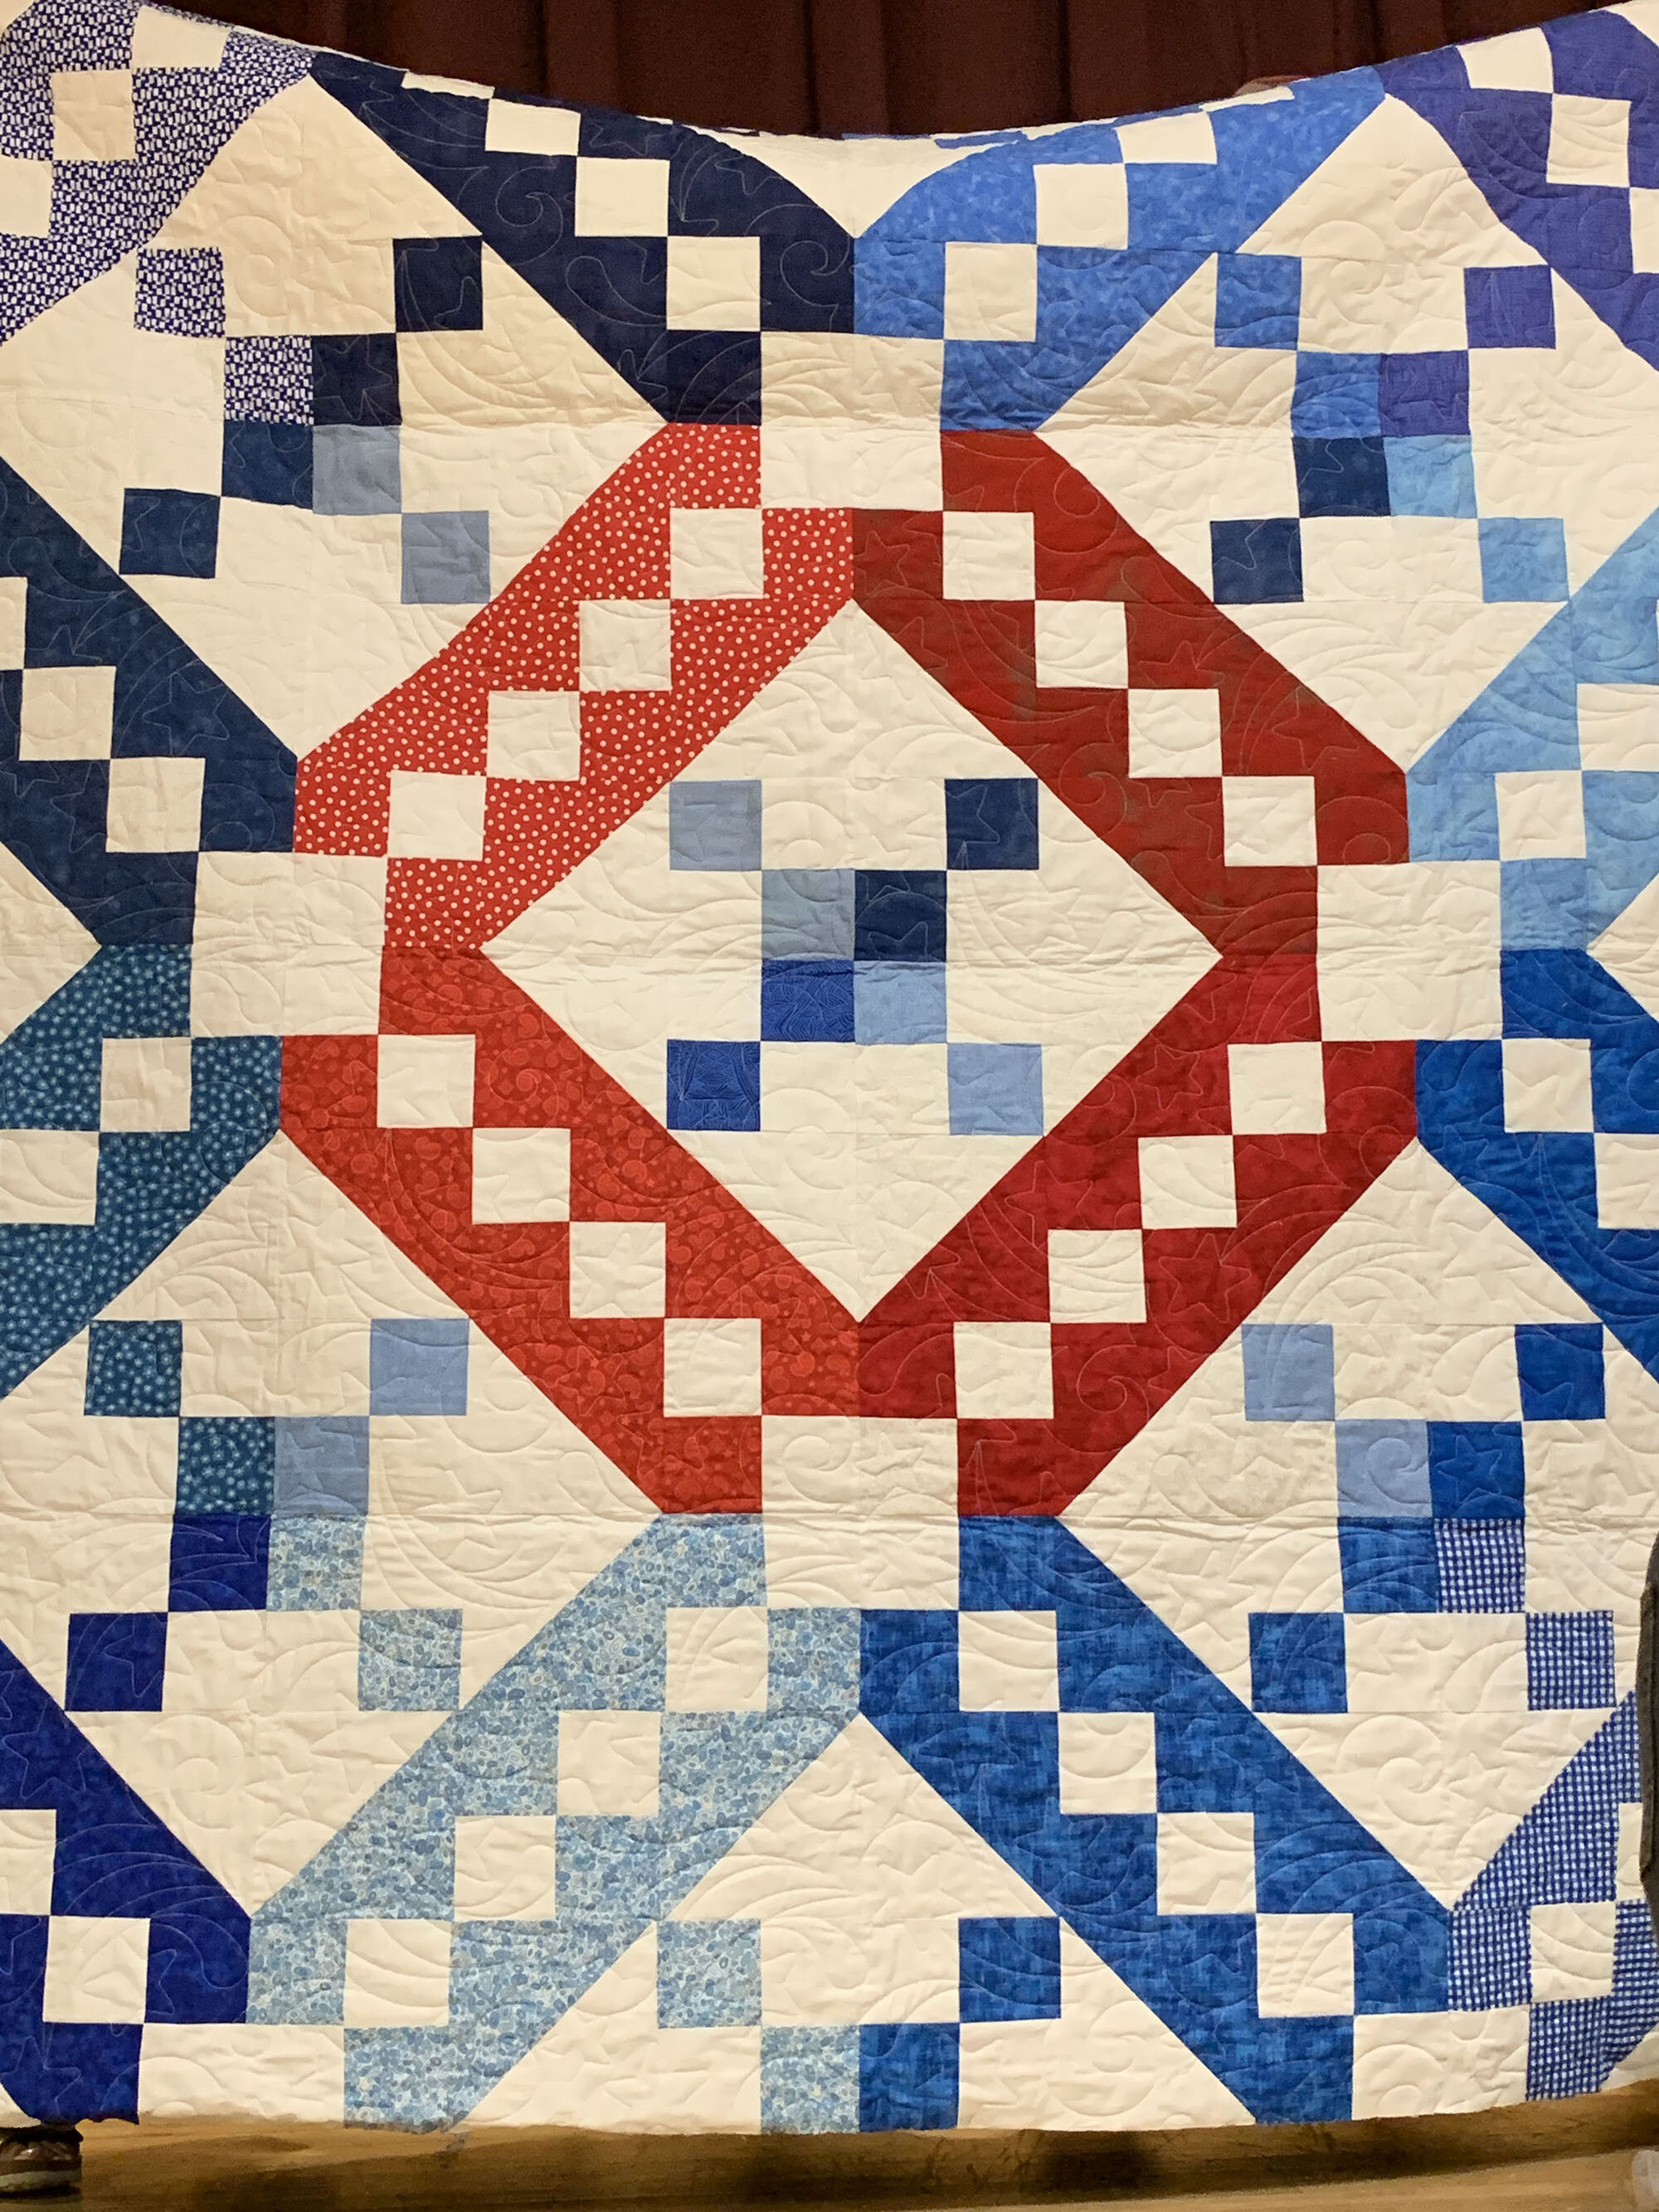 Jacob's Ladder charity quilt by Robin Engelman